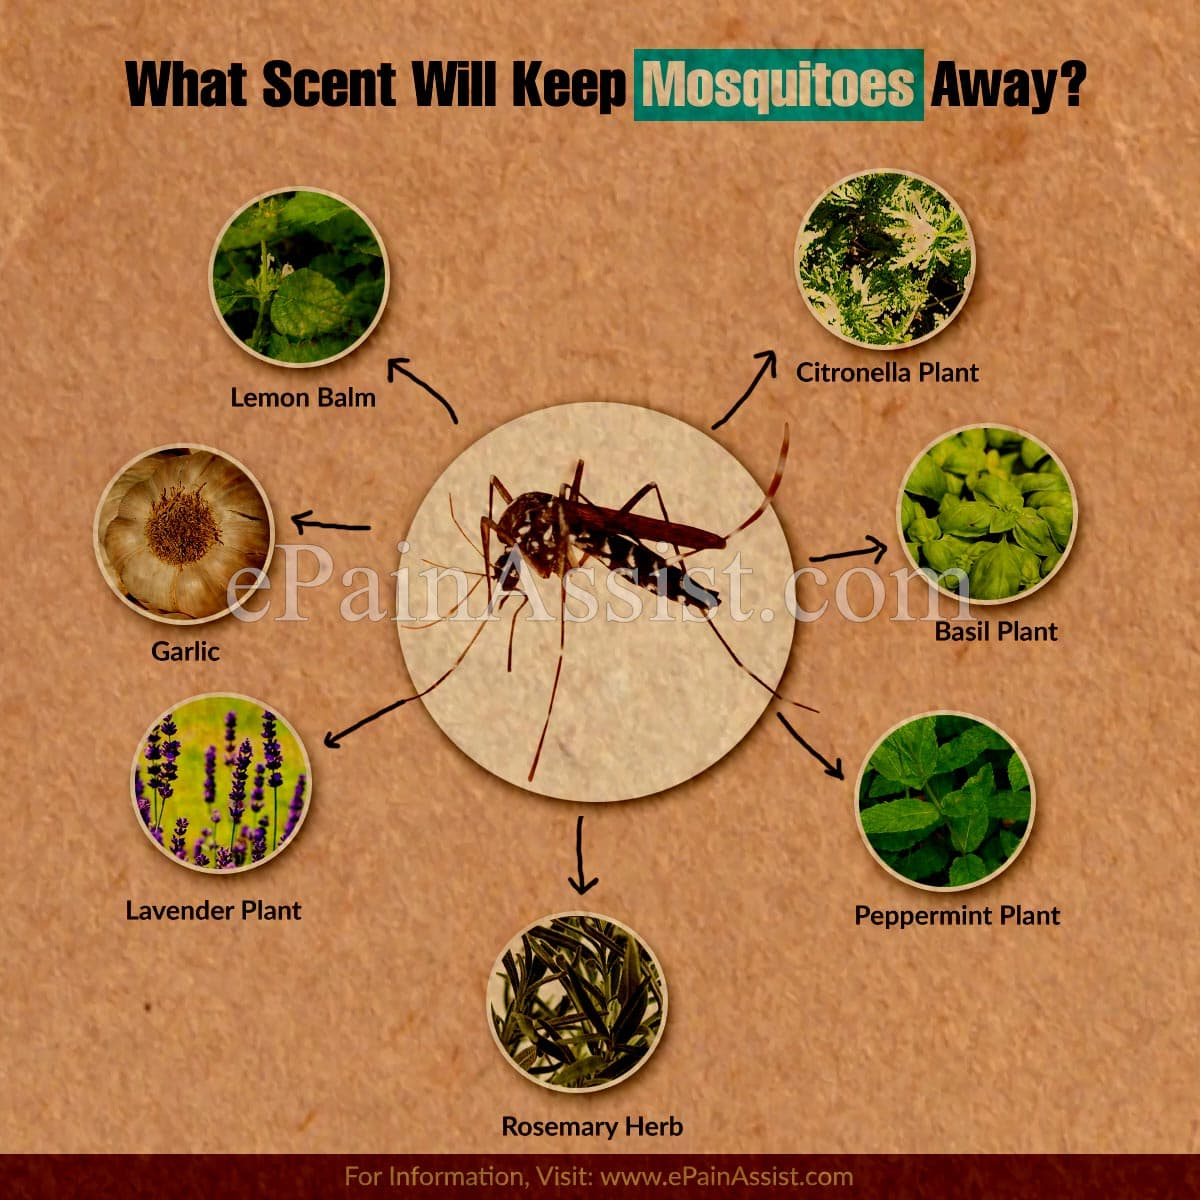 What Scent Will Keep Mosquitoes Away?